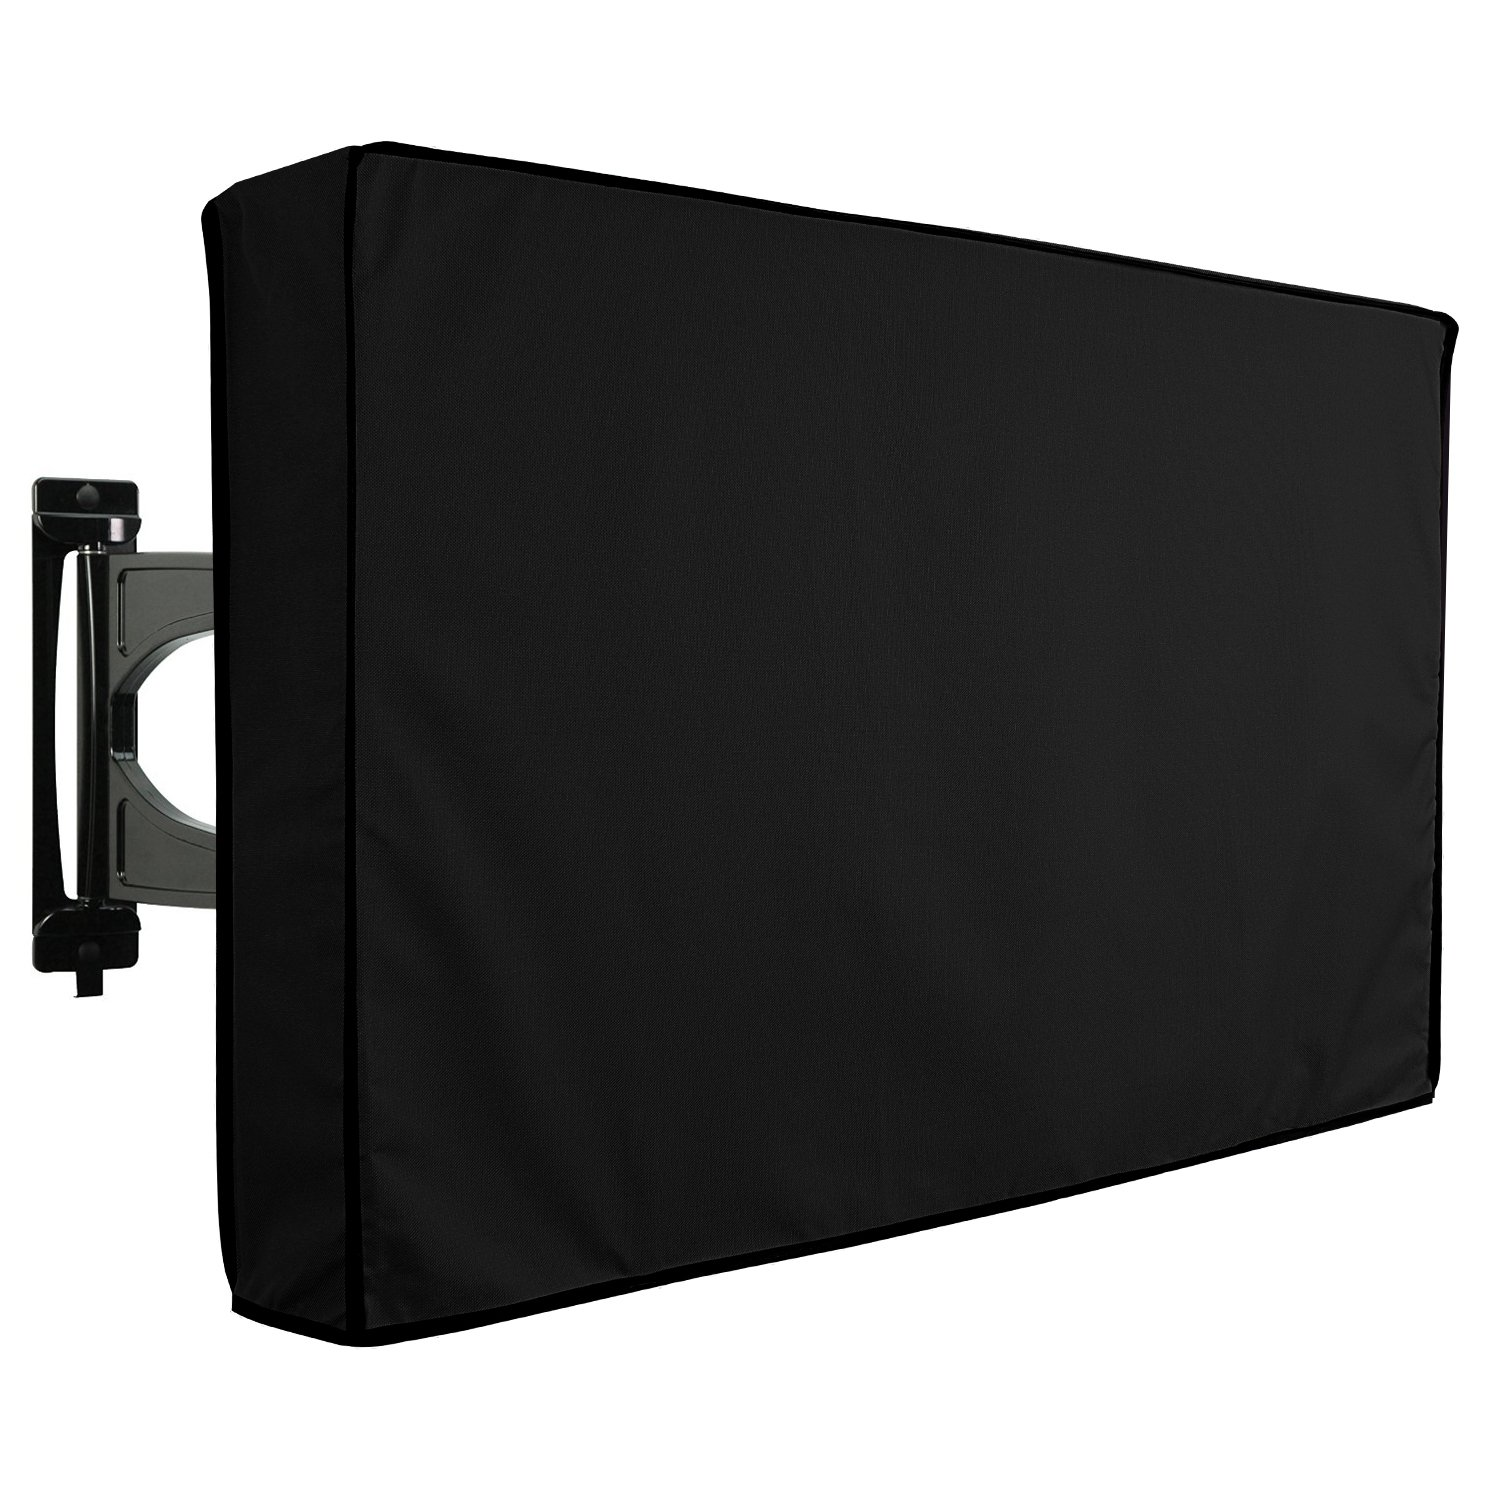 Outdoor TV Cover, Panther Series Weatherproof Universal Protector for 50